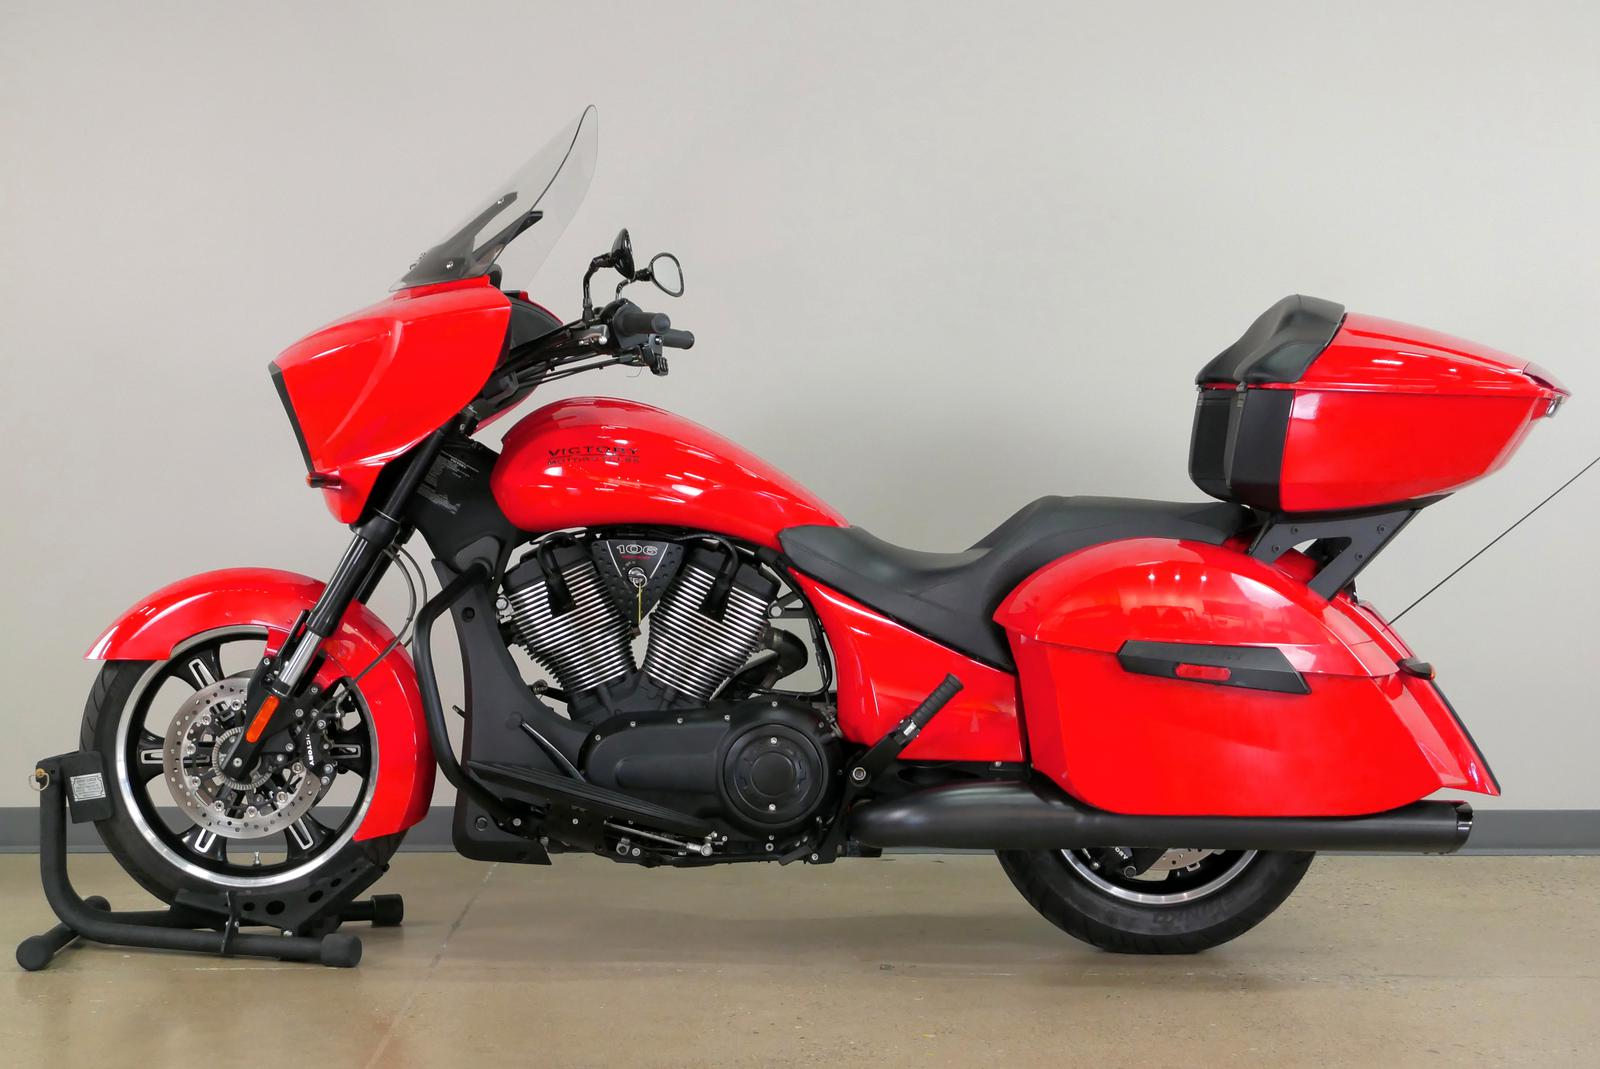 Wondrous 2014 Victory Motorcycles Cross Country Abs For Sale In Machost Co Dining Chair Design Ideas Machostcouk